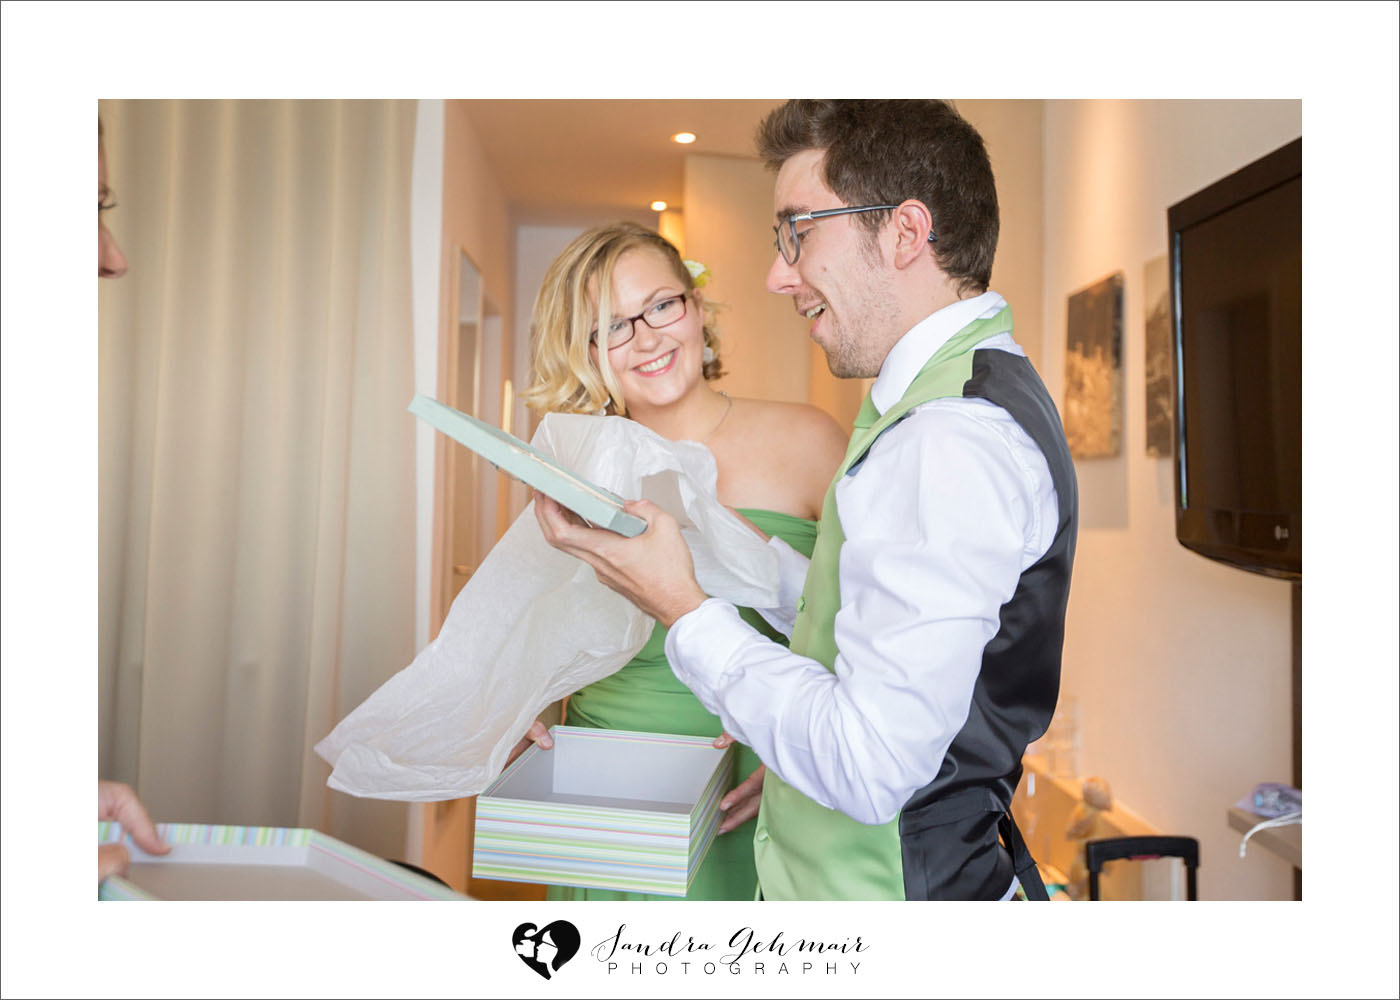 008_heiraten_am_see_spitzvilla_sandra_gehmair